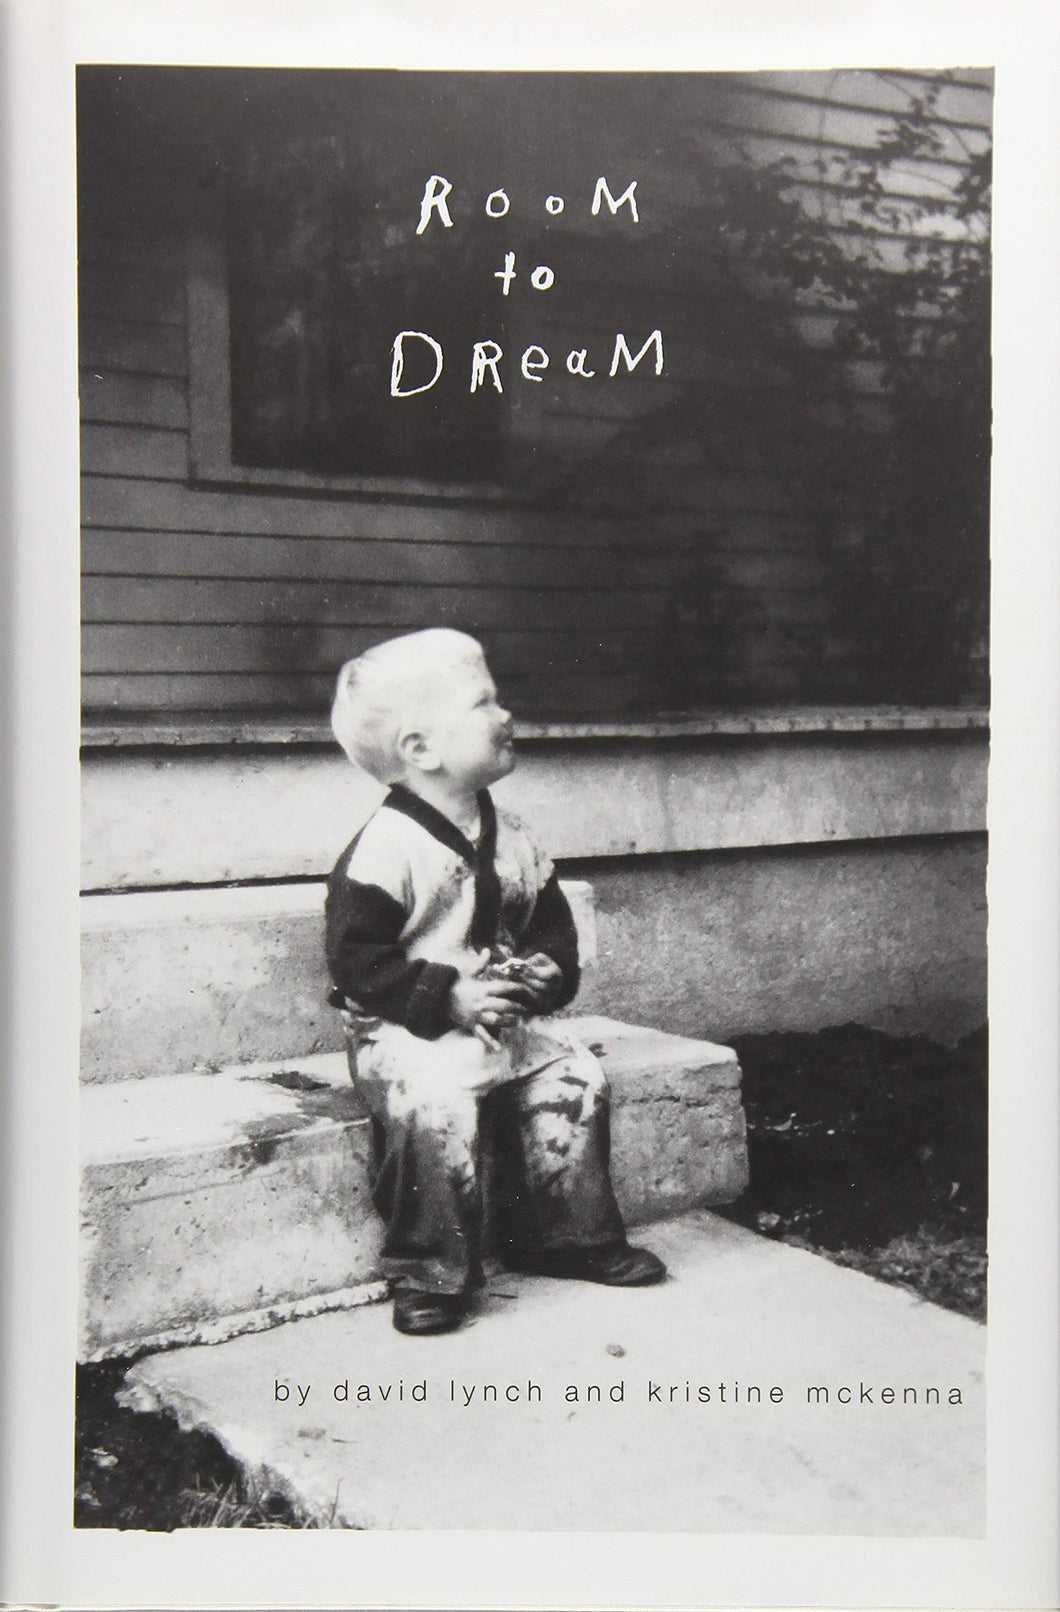 Room to dream / David Lynch, Kristine Mckenna